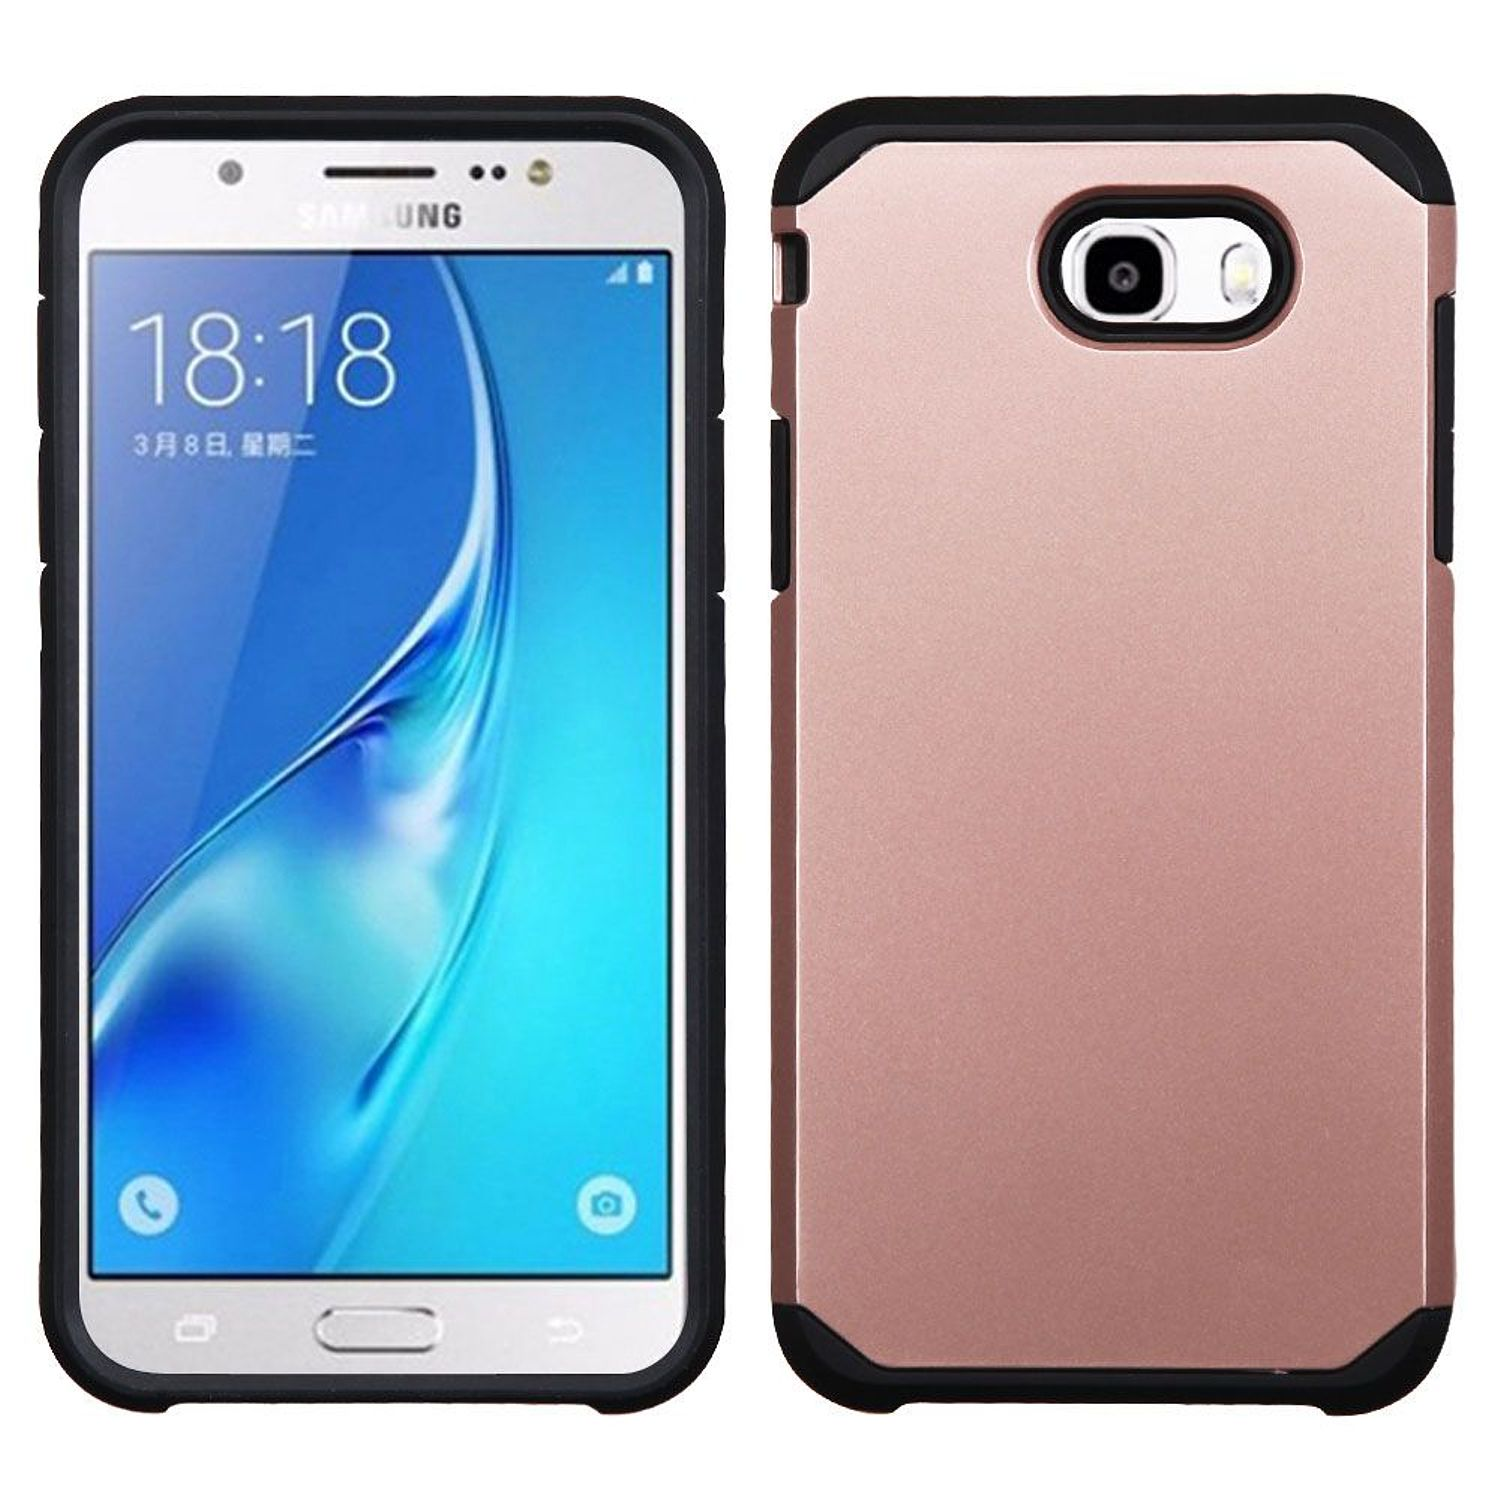 Samsung Galaxy J7 Sky Pro case, Samsung Galaxy Sky Pro case, by Insten Dual Layer [Shock Absorbing] Hybrid Hard Plastic/Soft TPU Rubber Case Cover For Samsung Galaxy J7 (2017)/Sky Pro, Rose Gold/Black